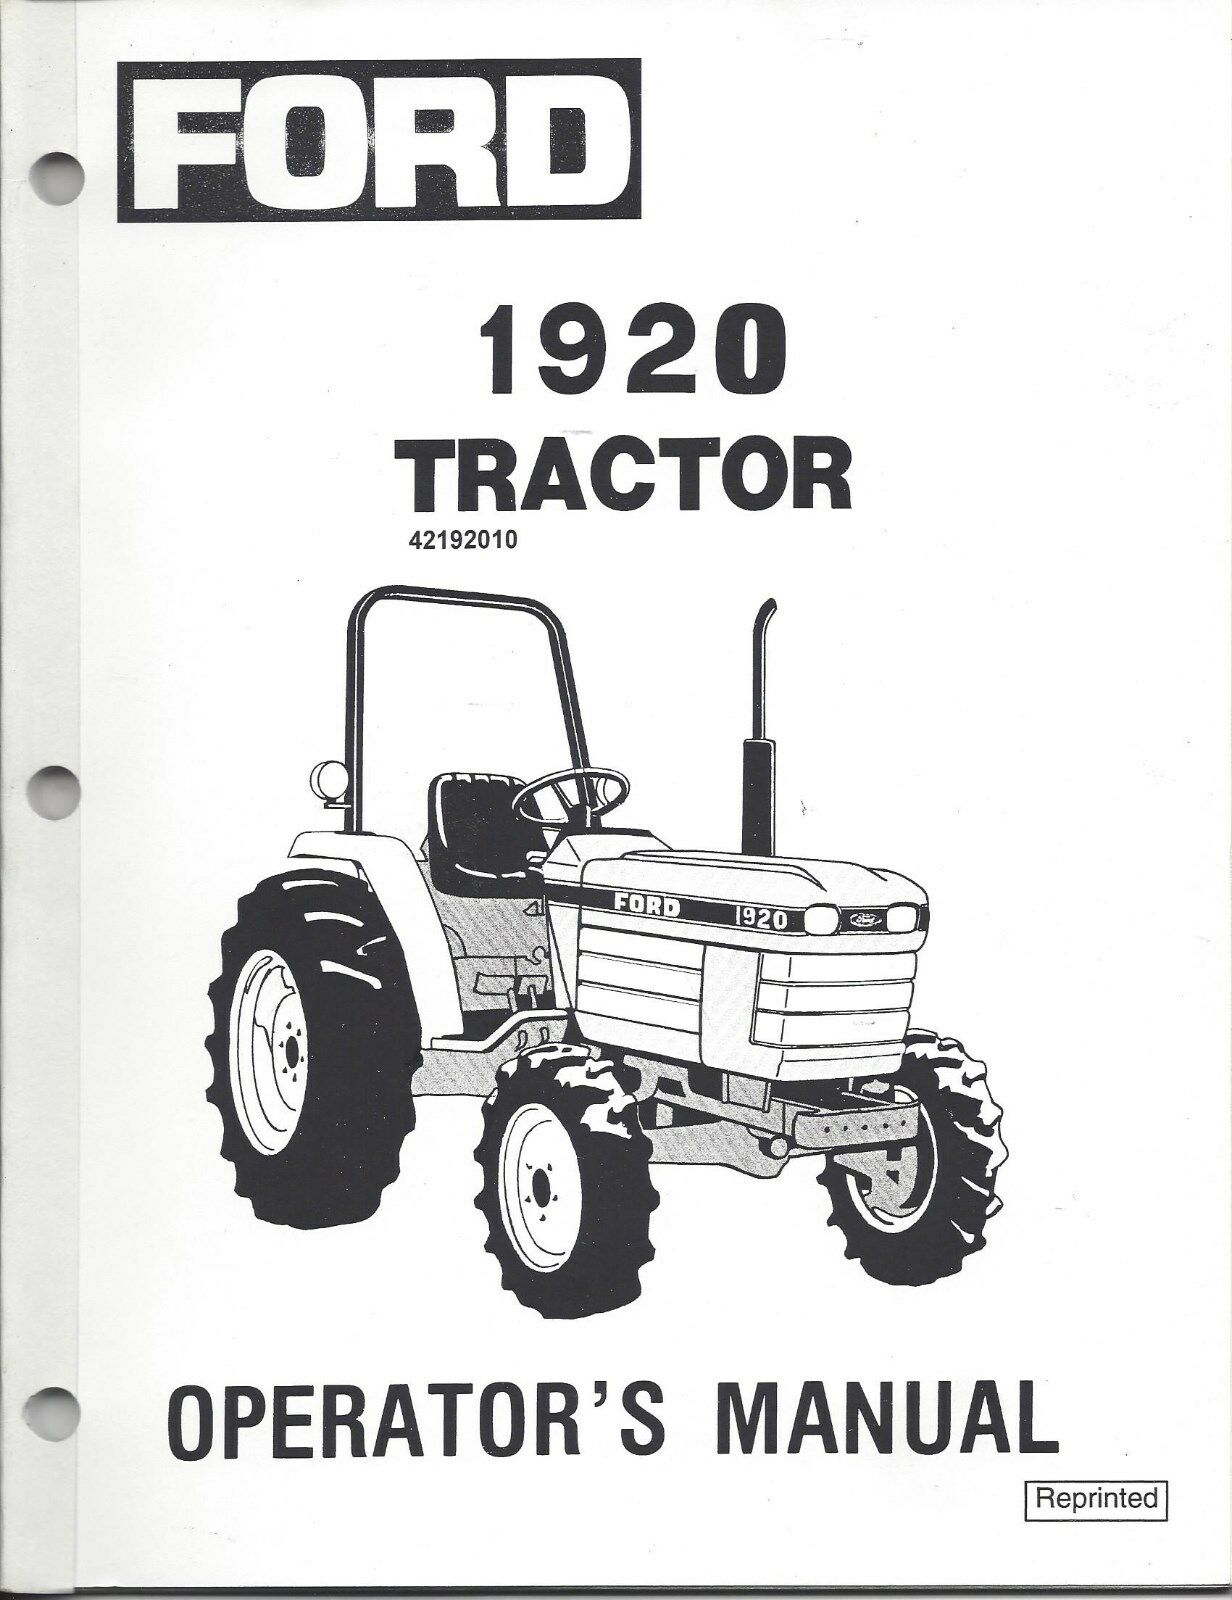 1715 Ford Tractor Wiring Diagram Schematics Diagrams Naa Parts Motor Schematic 4000